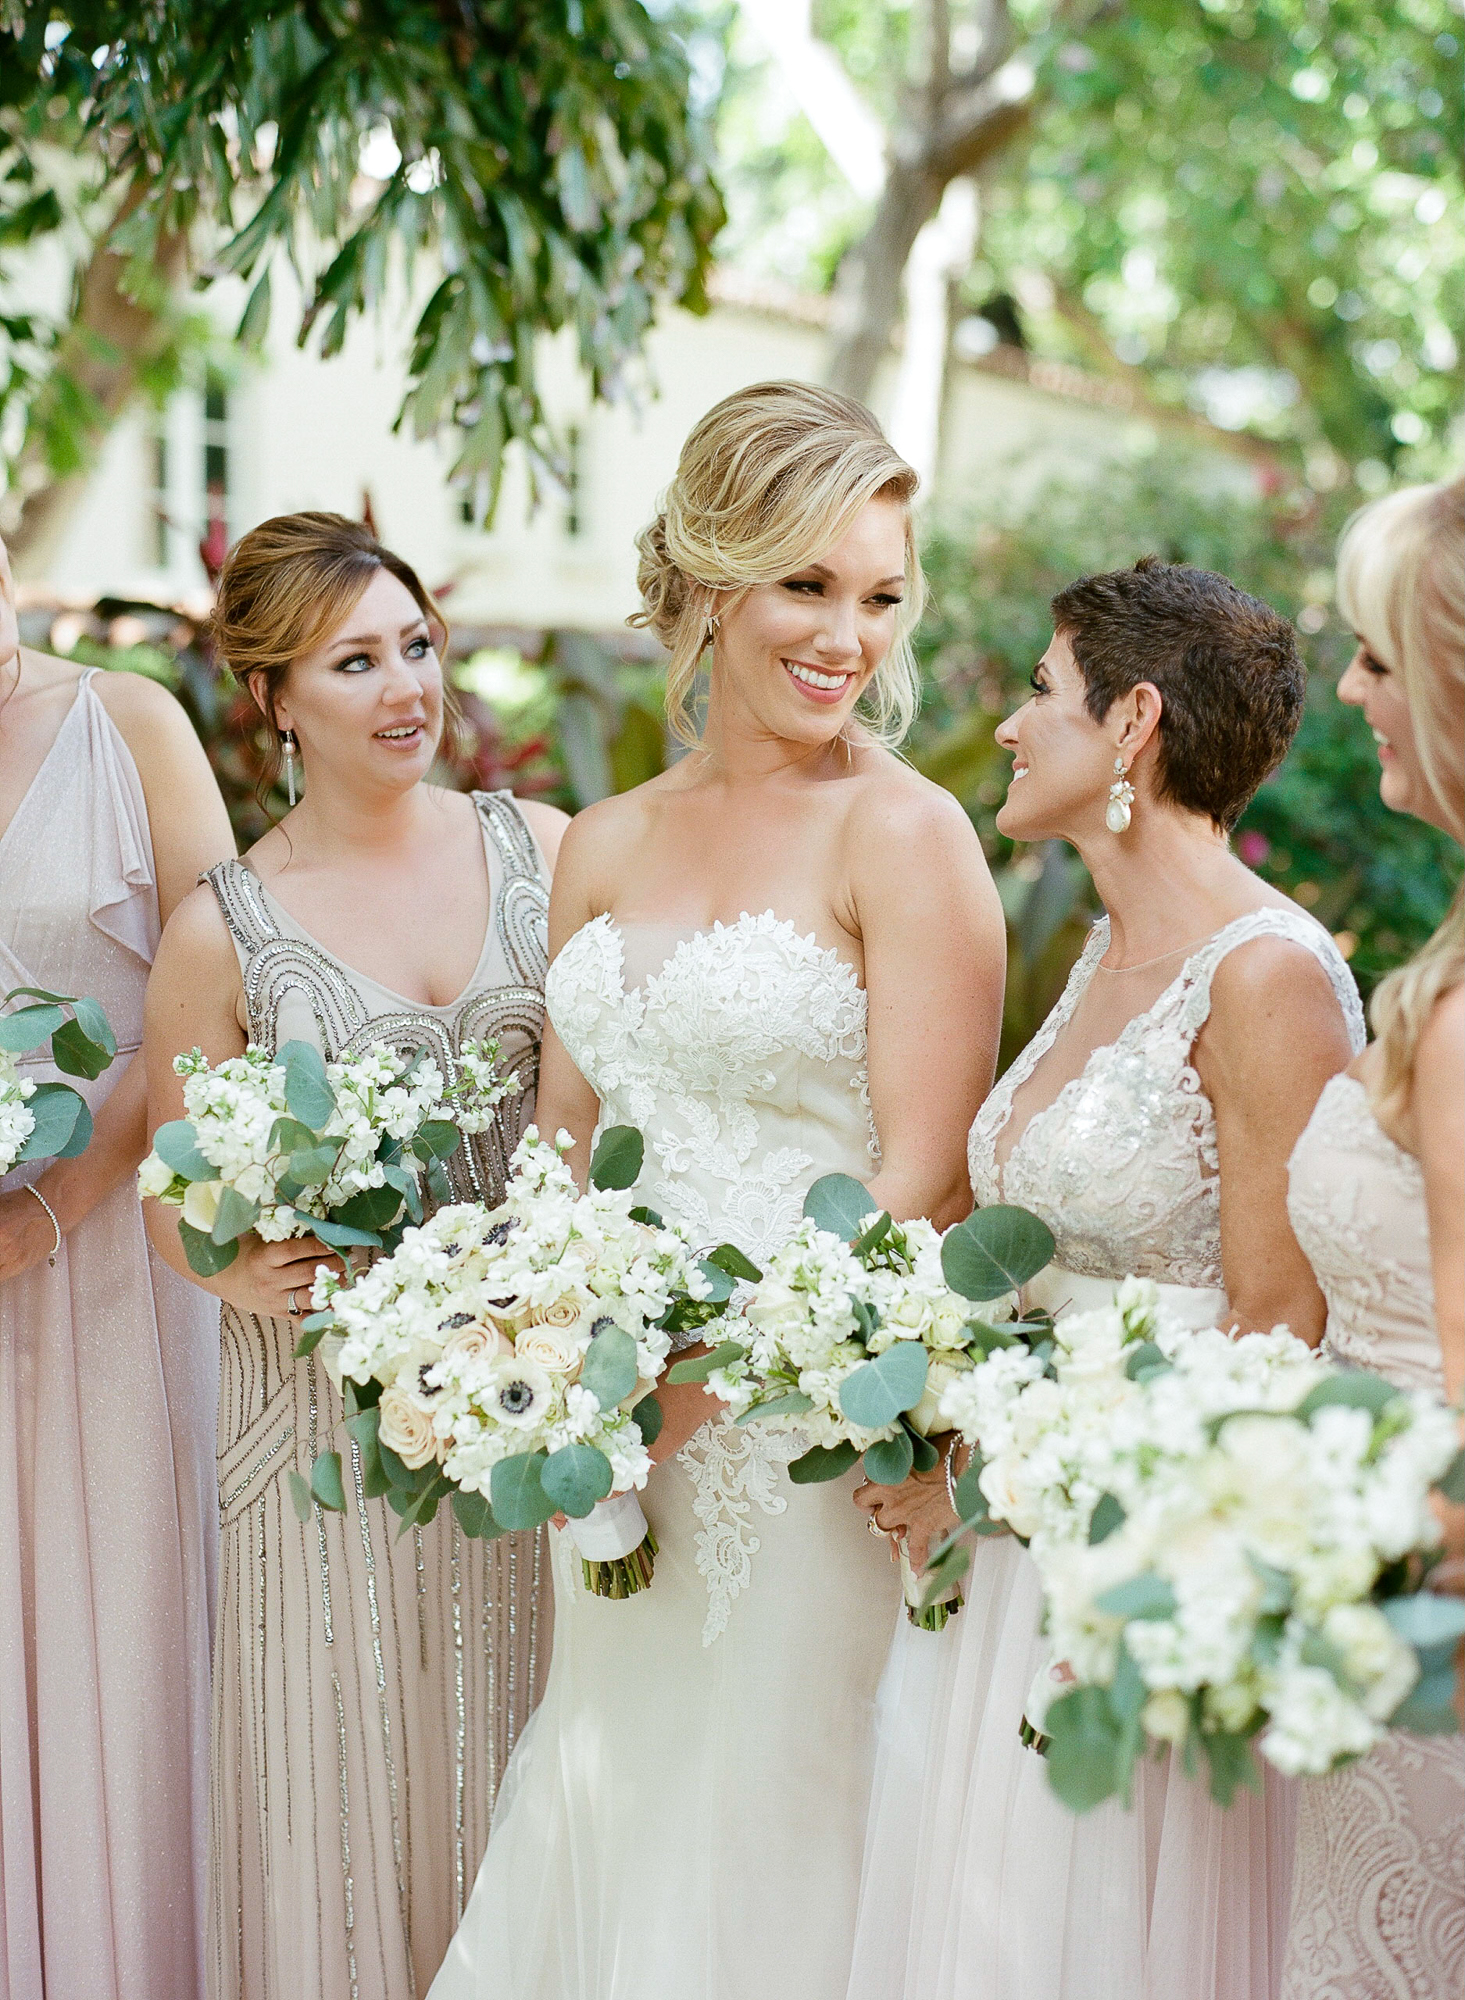 Close-up of bride standing with her bridal party looking at each other wearing blush mix-matched gowns and holding their bouquets.